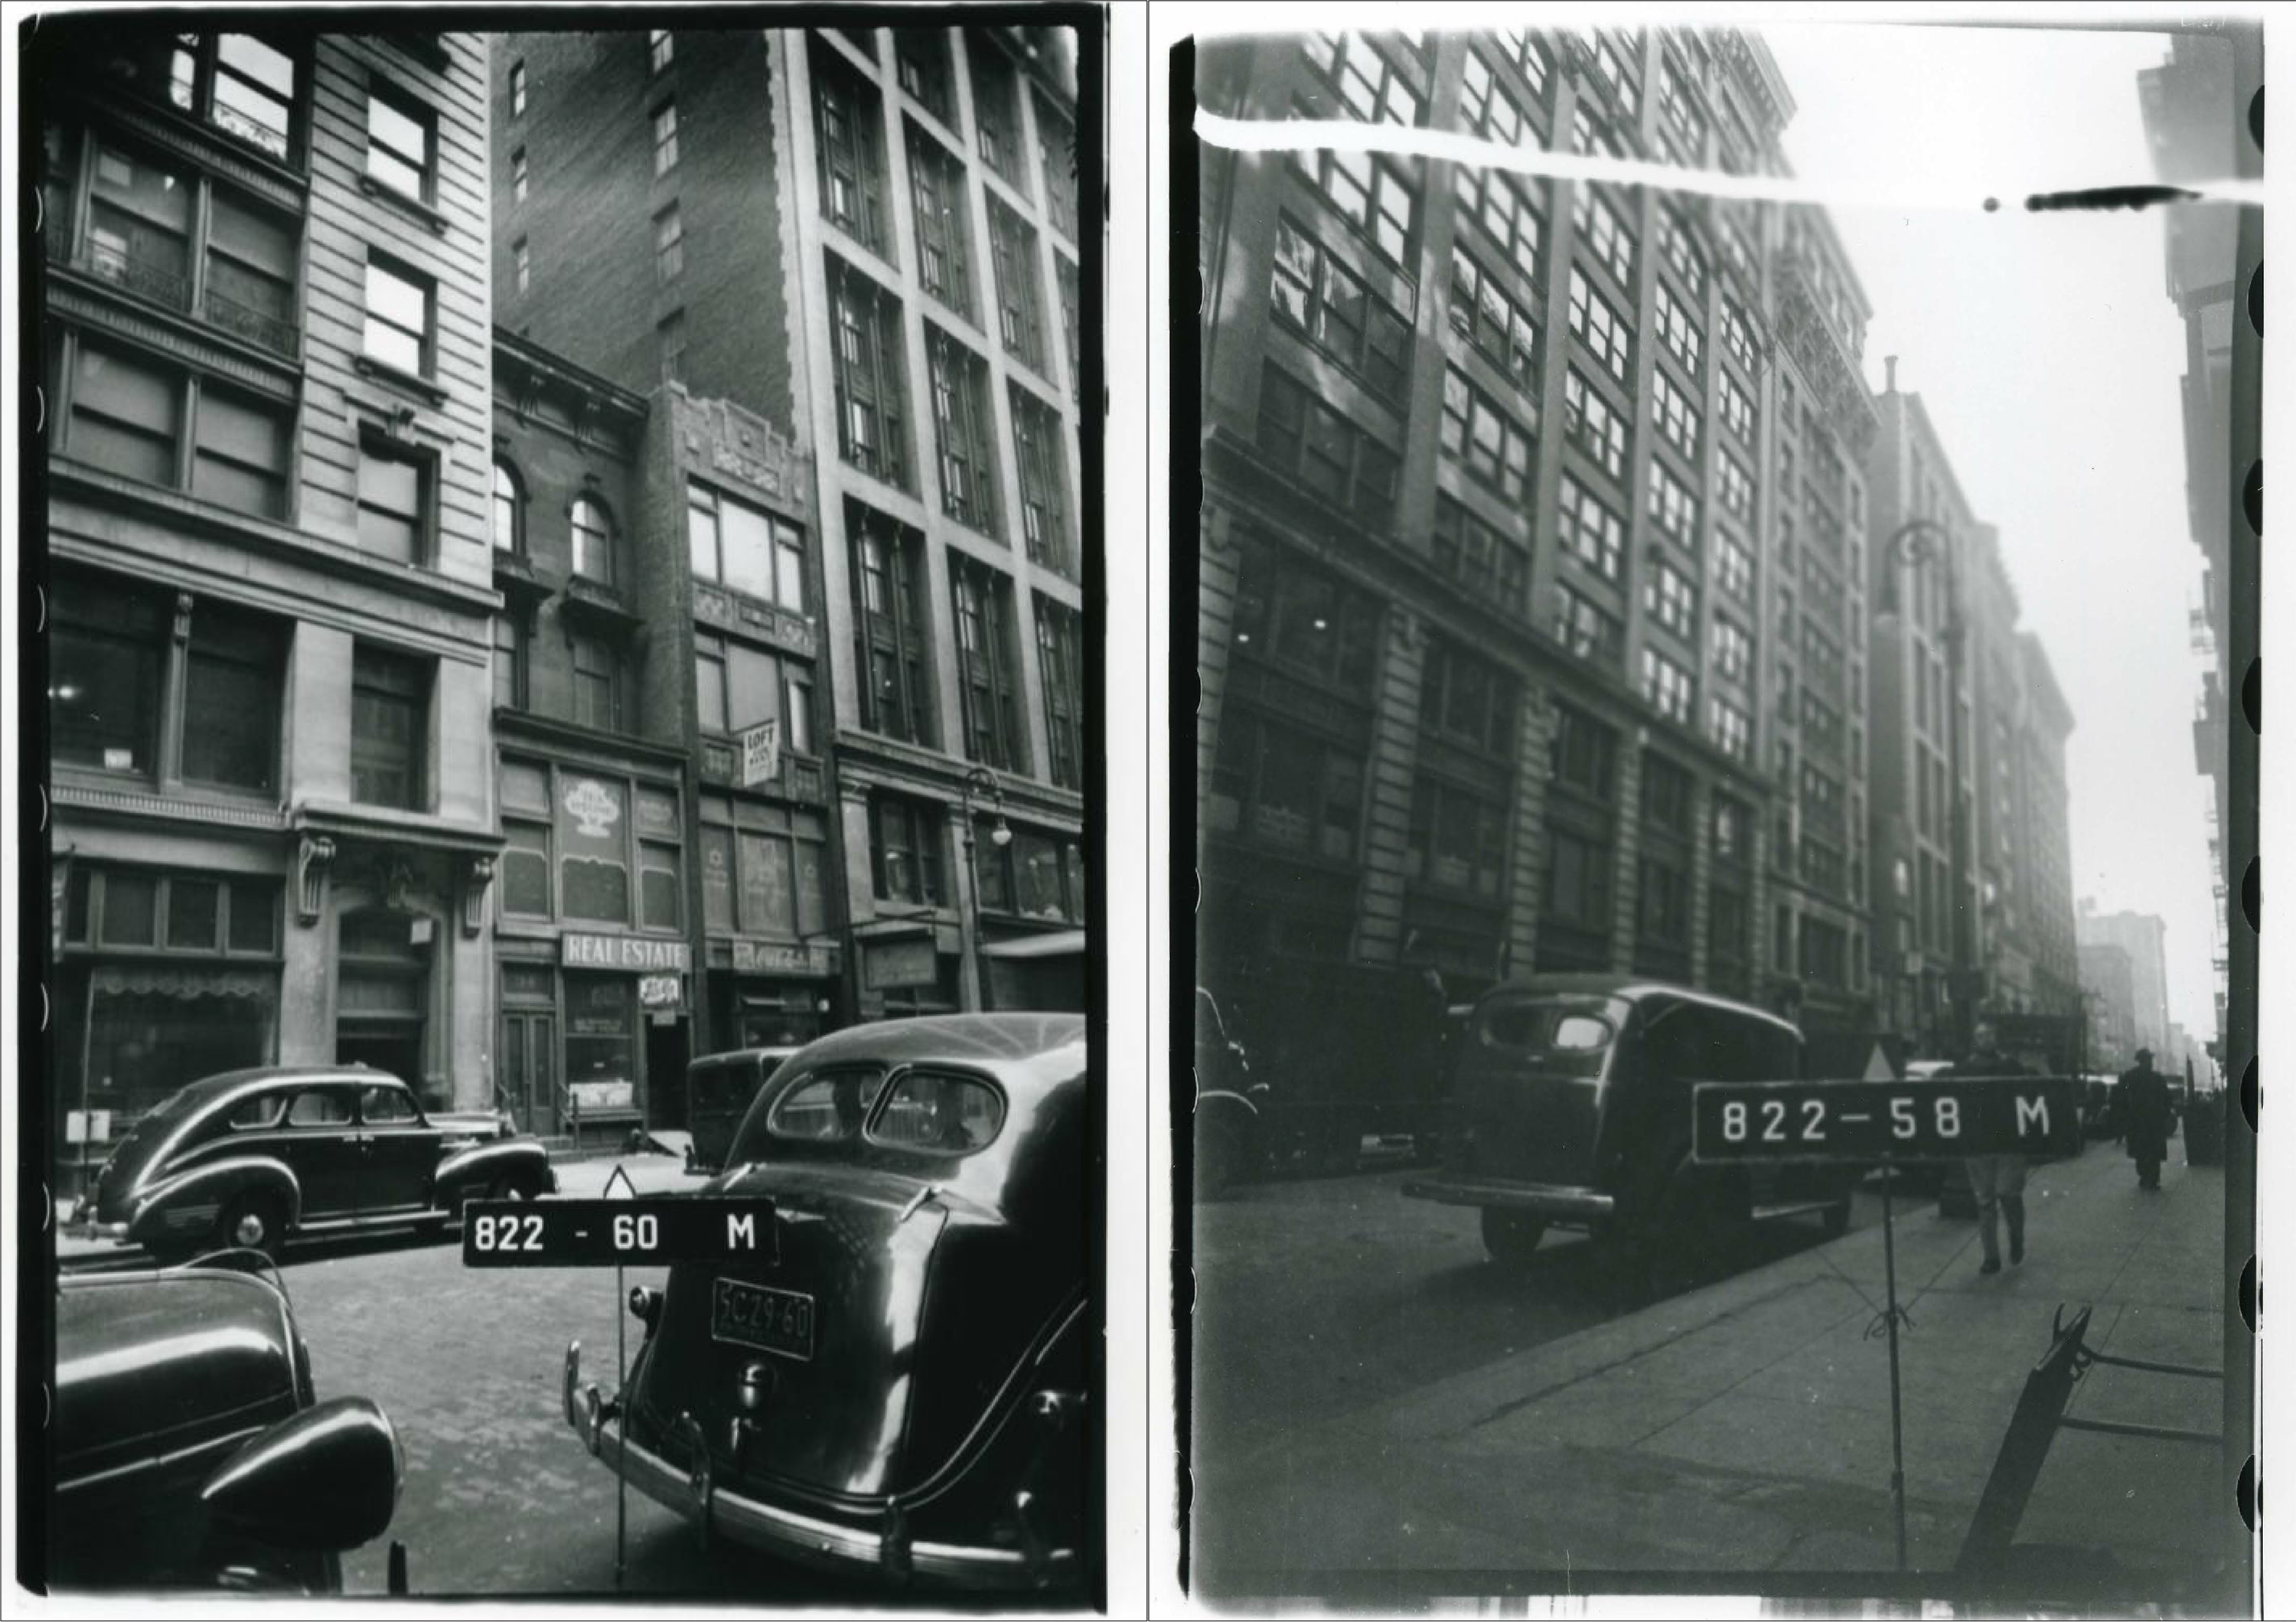 Historic photos showing 34 West 21st Street